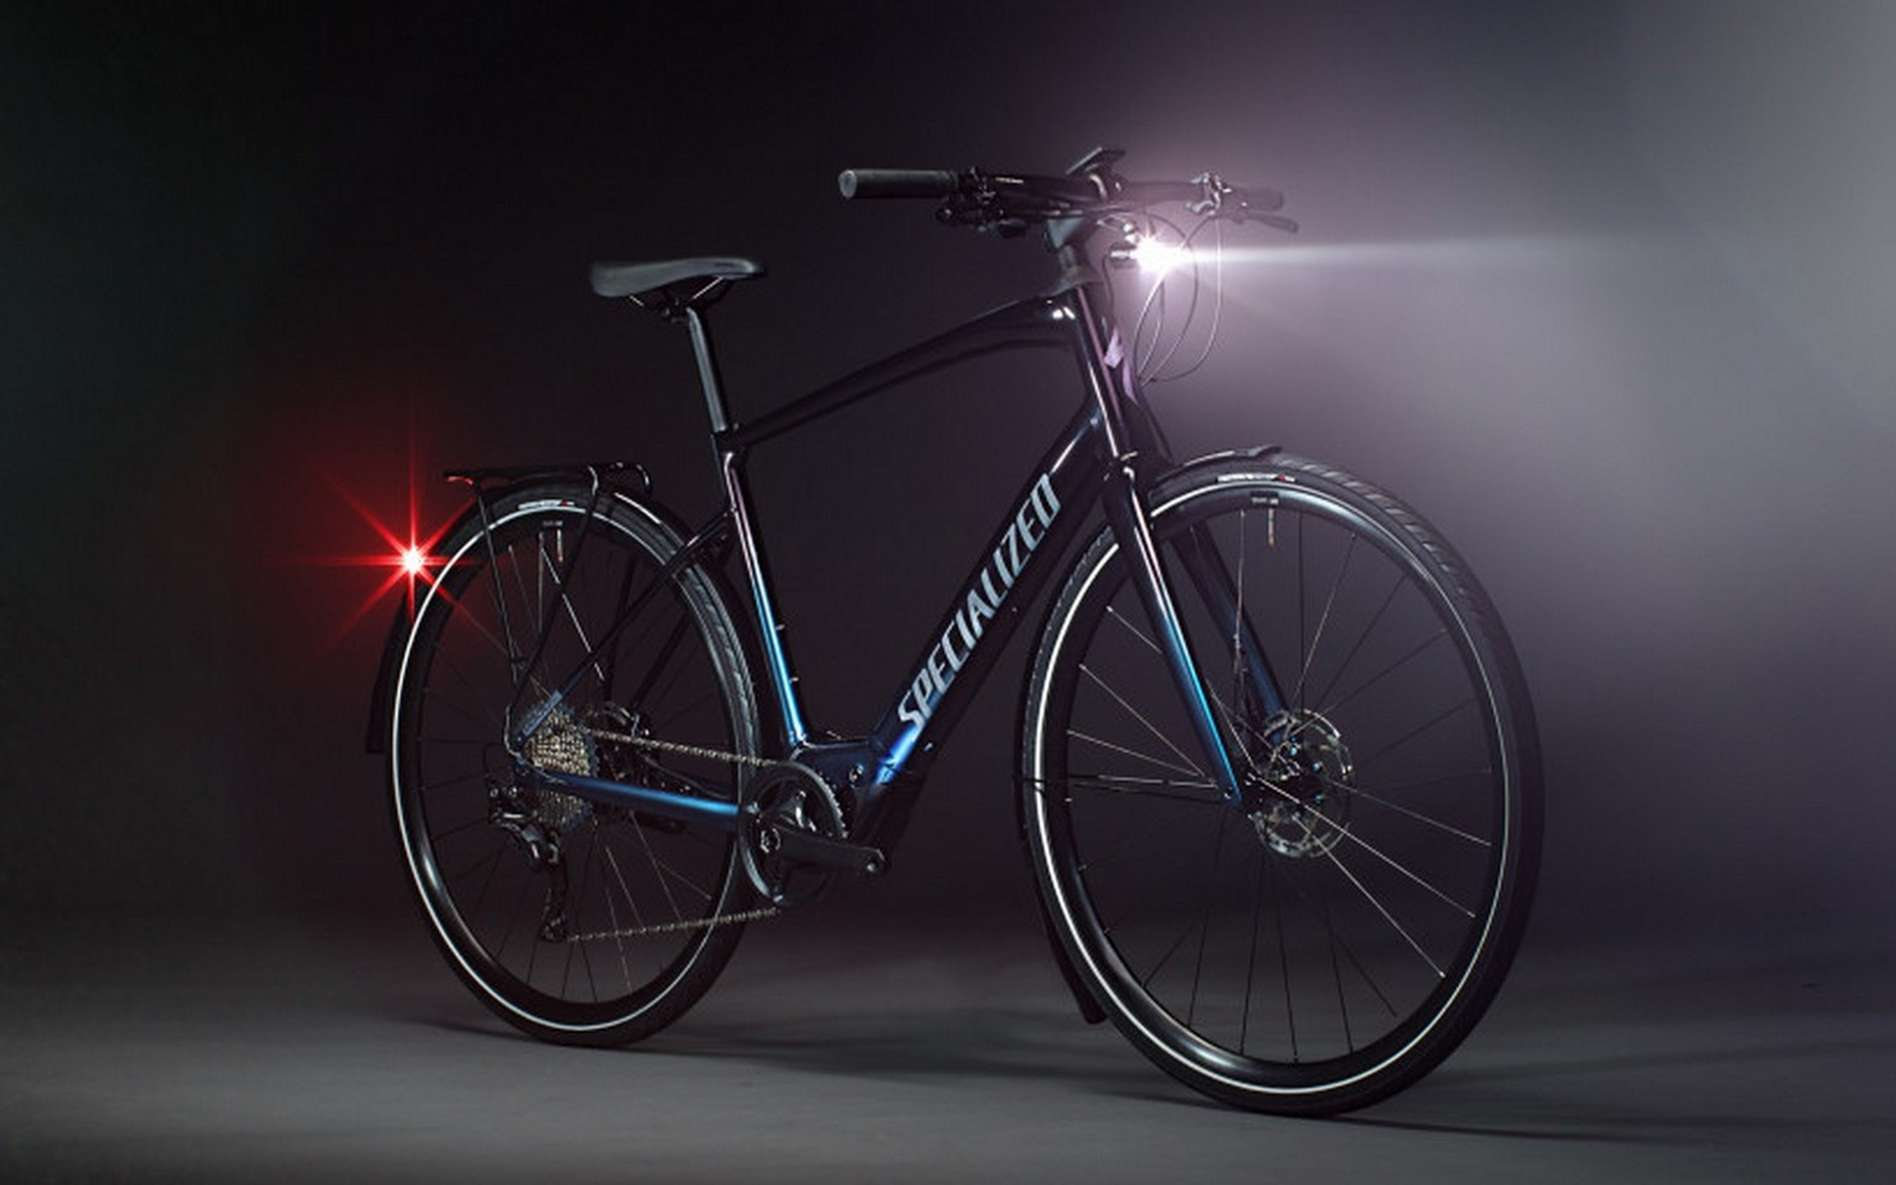 Le Specialized Vado SL se veut facile à transporter. © Specialized